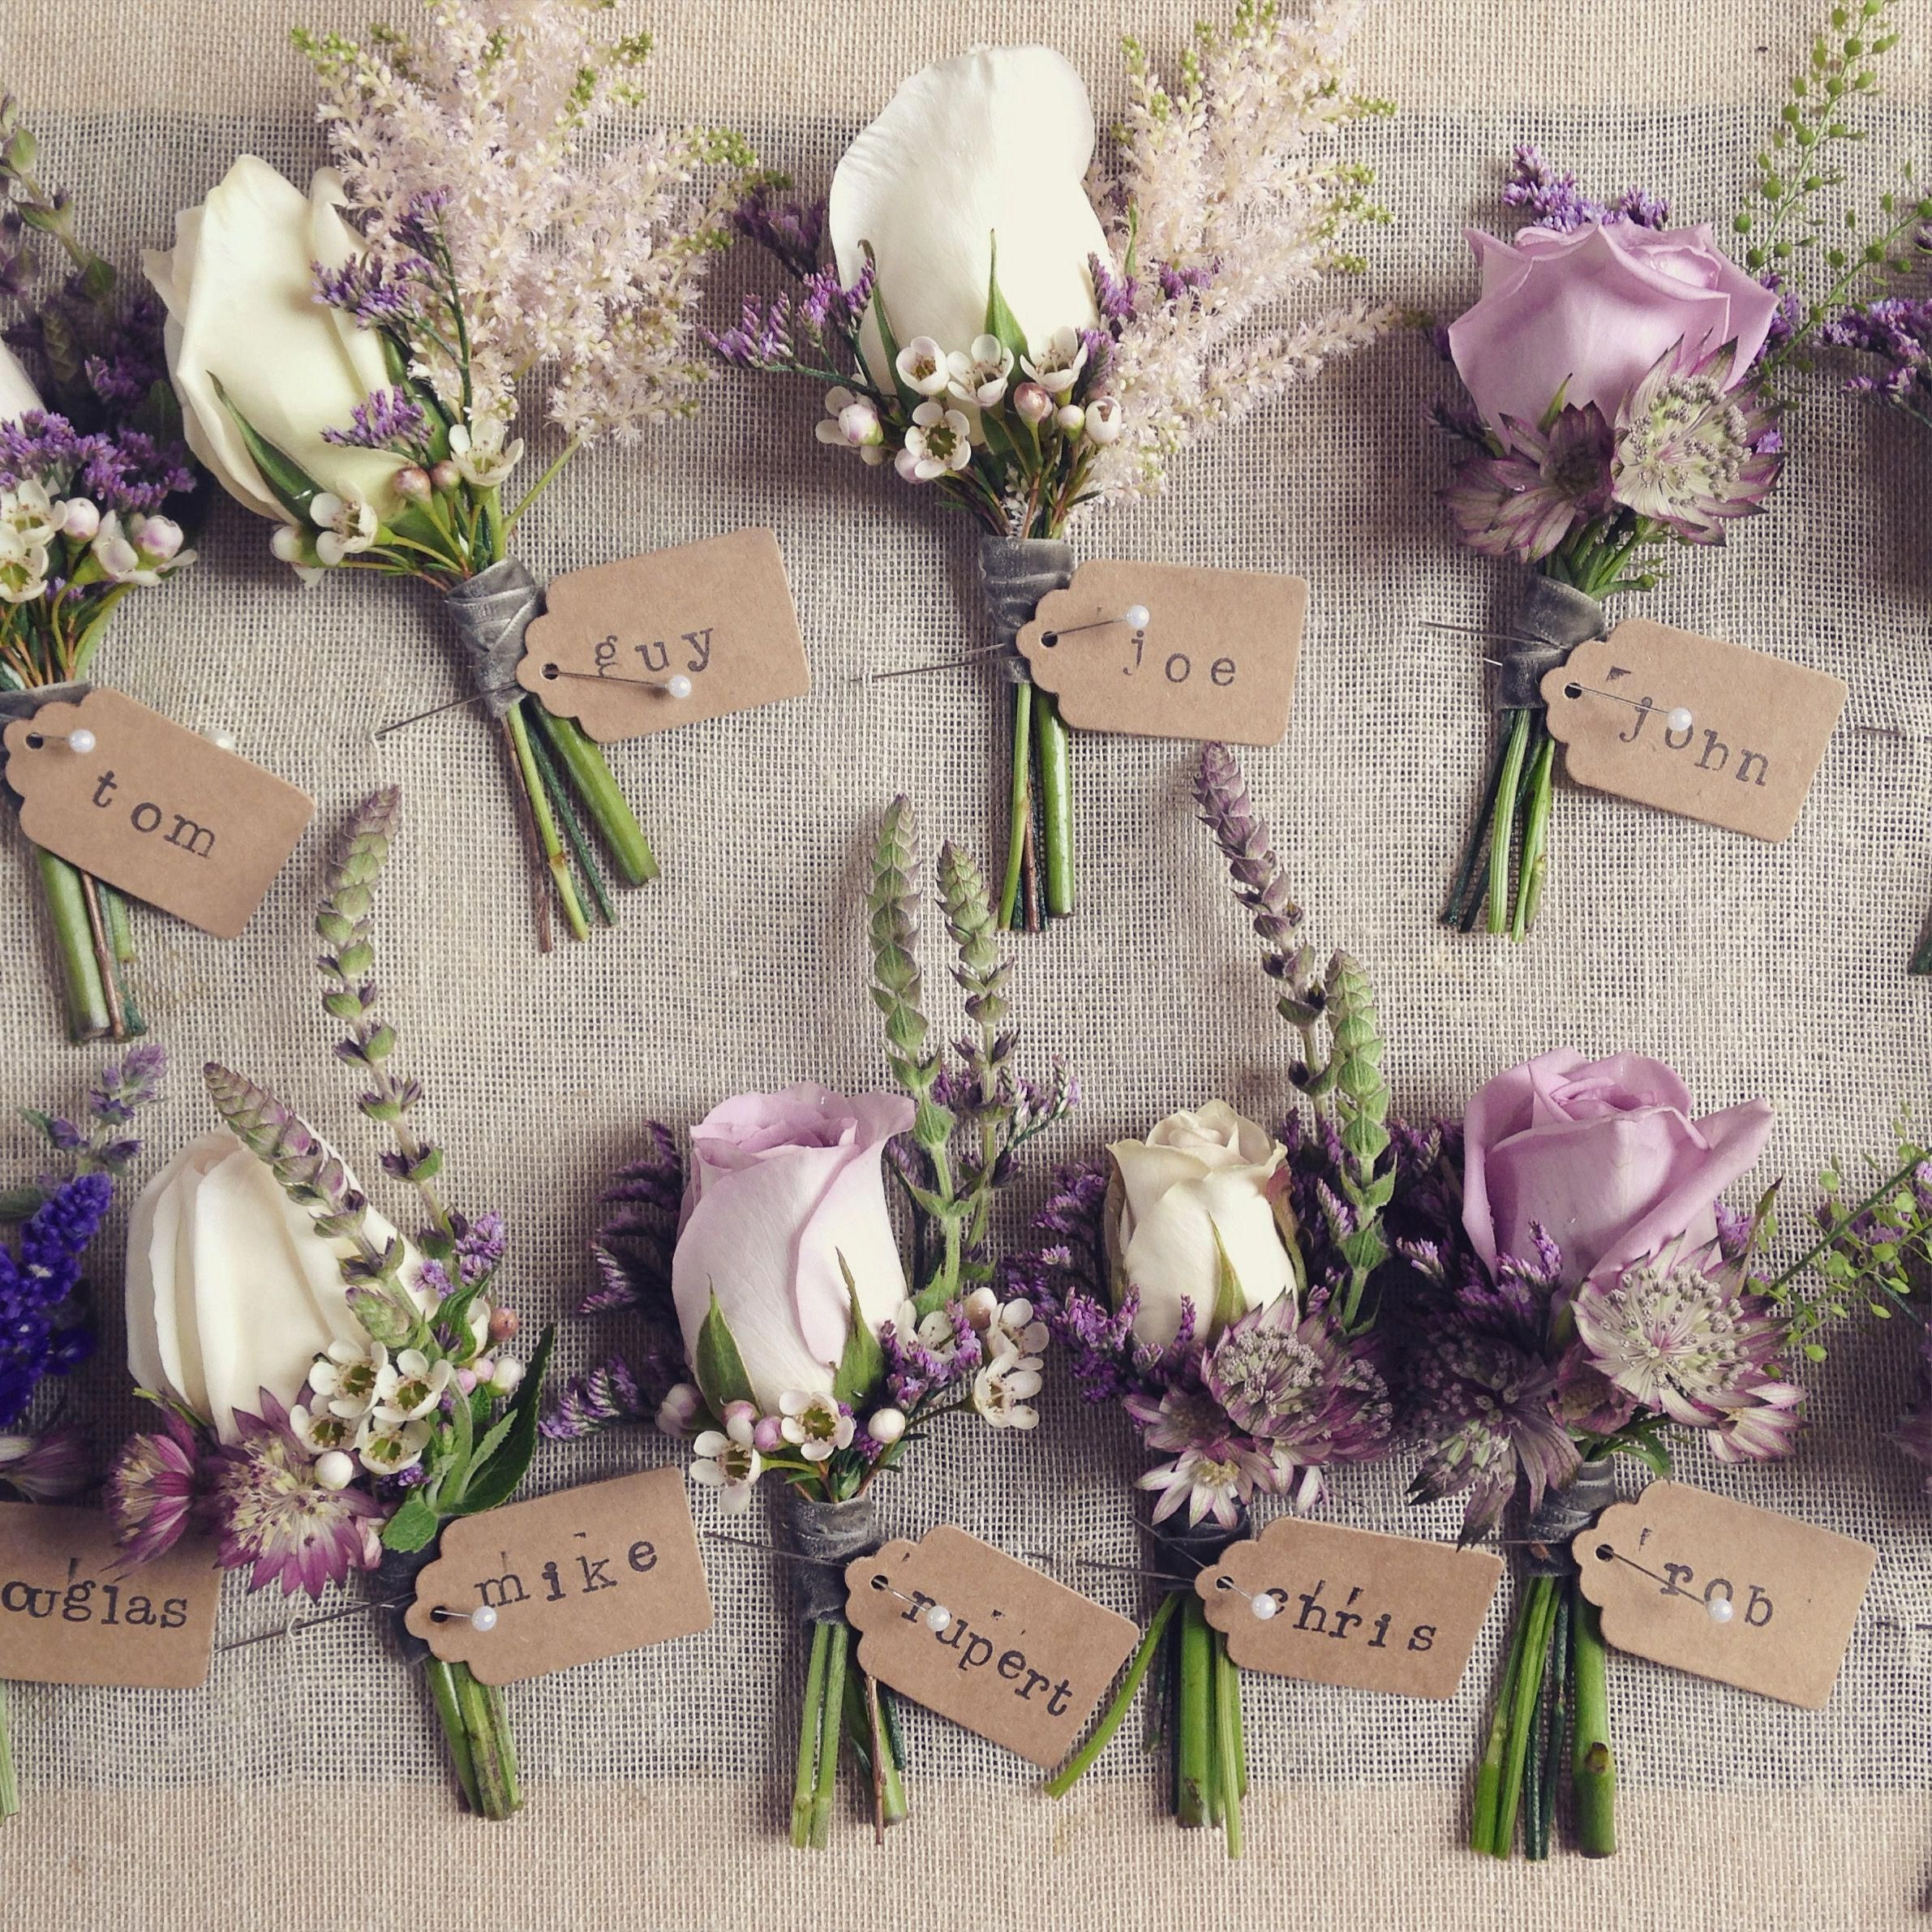 Ylqht 3 1 28 Colors Baby Flower Hair Clips Chiffon Rose Wedding Flowers Hair Accessories Purple Wedding Bouquets Purple Wedding Flowers Wedding Flower Guide